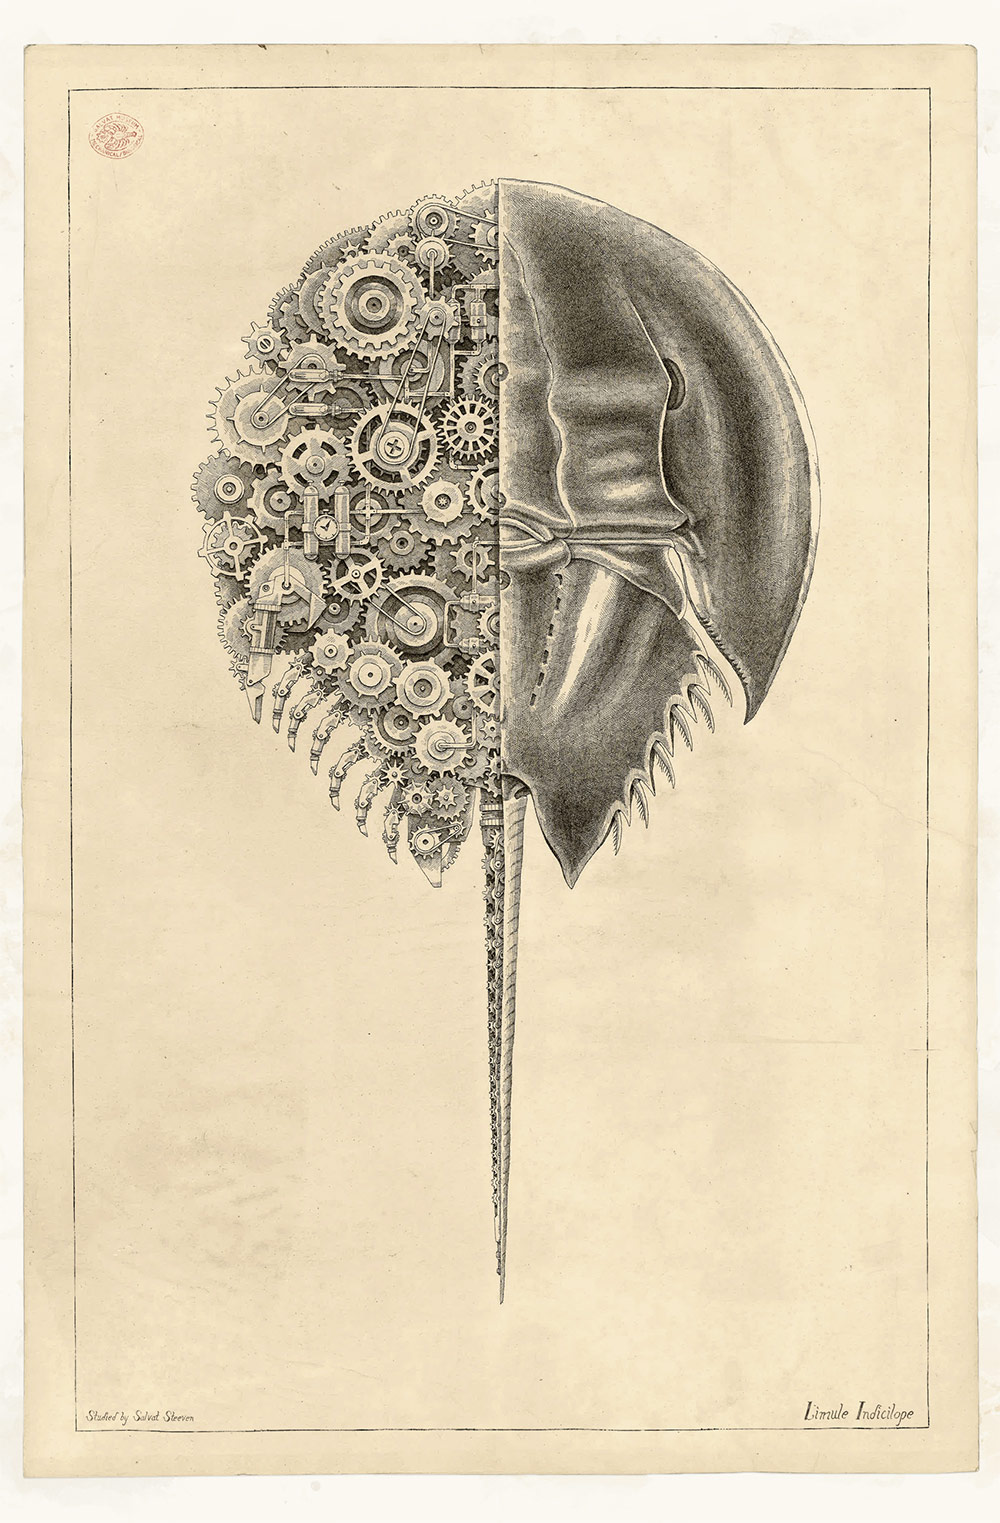 Mechanical Crustaceans with Clockwork Insides Illustrated